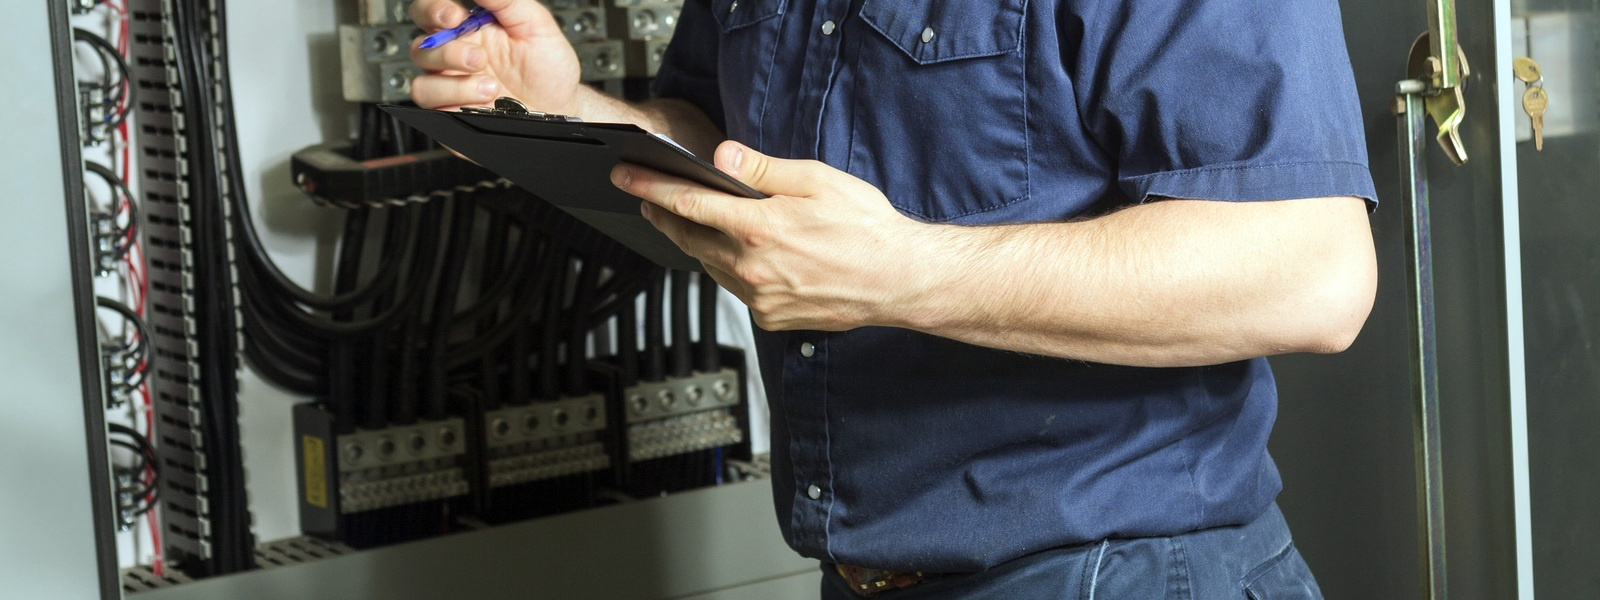 8 Ways Commercial Electrical Services Can Help Your Business